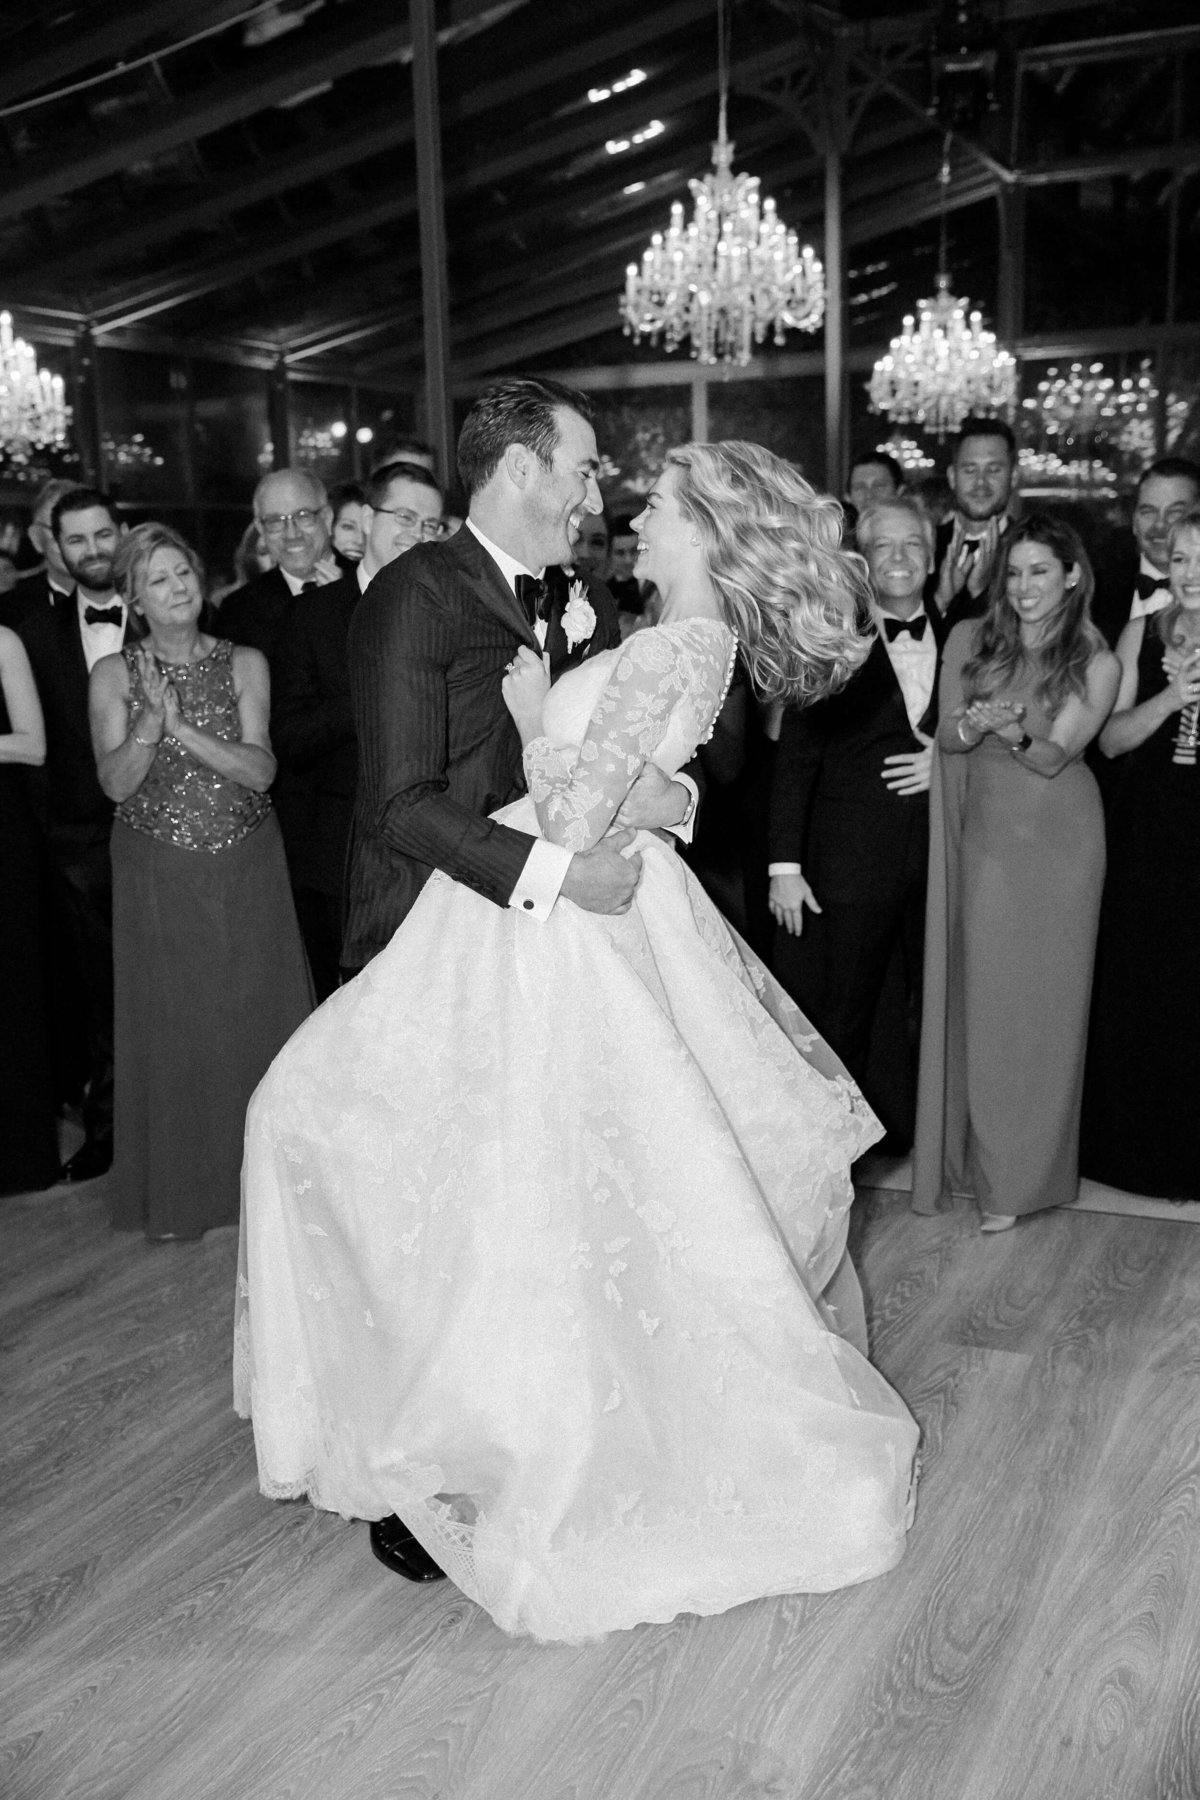 36-KTMerry-weddings-Kate-Upton-Justin-Verlander-dancing